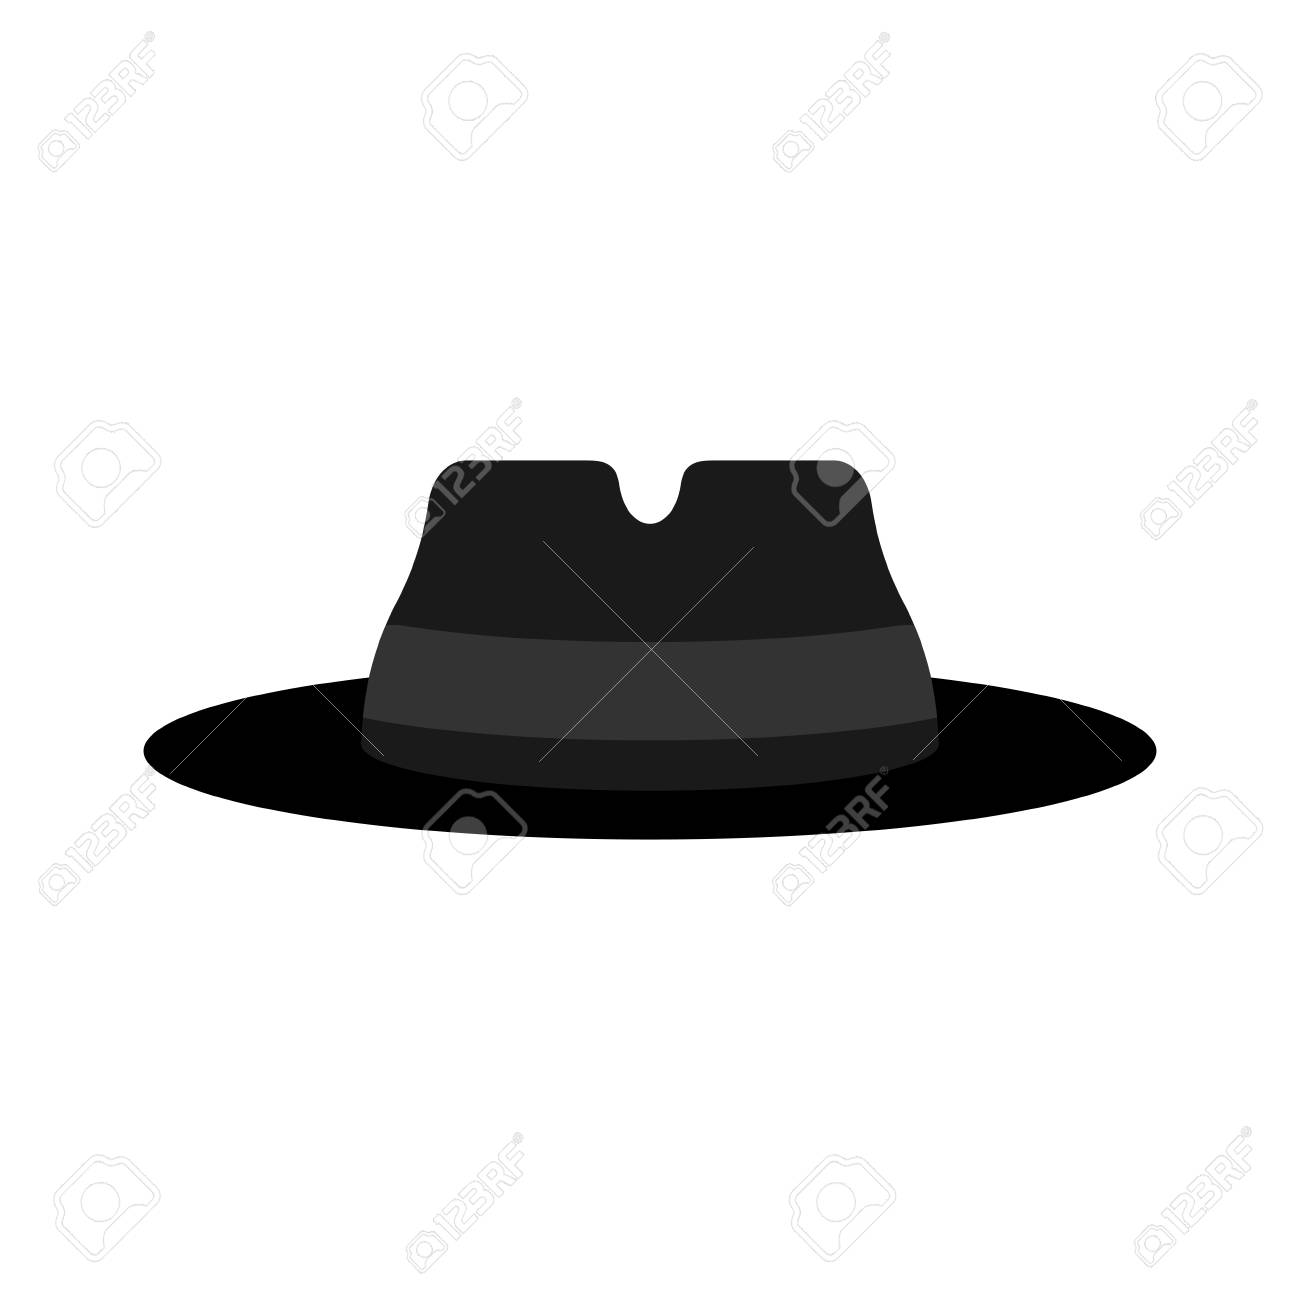 Fedora Hat Isolated Detective Hat Vector Illustration Royalty Free Cliparts Vectors And Stock Illustration Image 91804245 — more than 51 products with photos and customer's reviews in joom catalogue. fedora hat isolated detective hat vector illustration